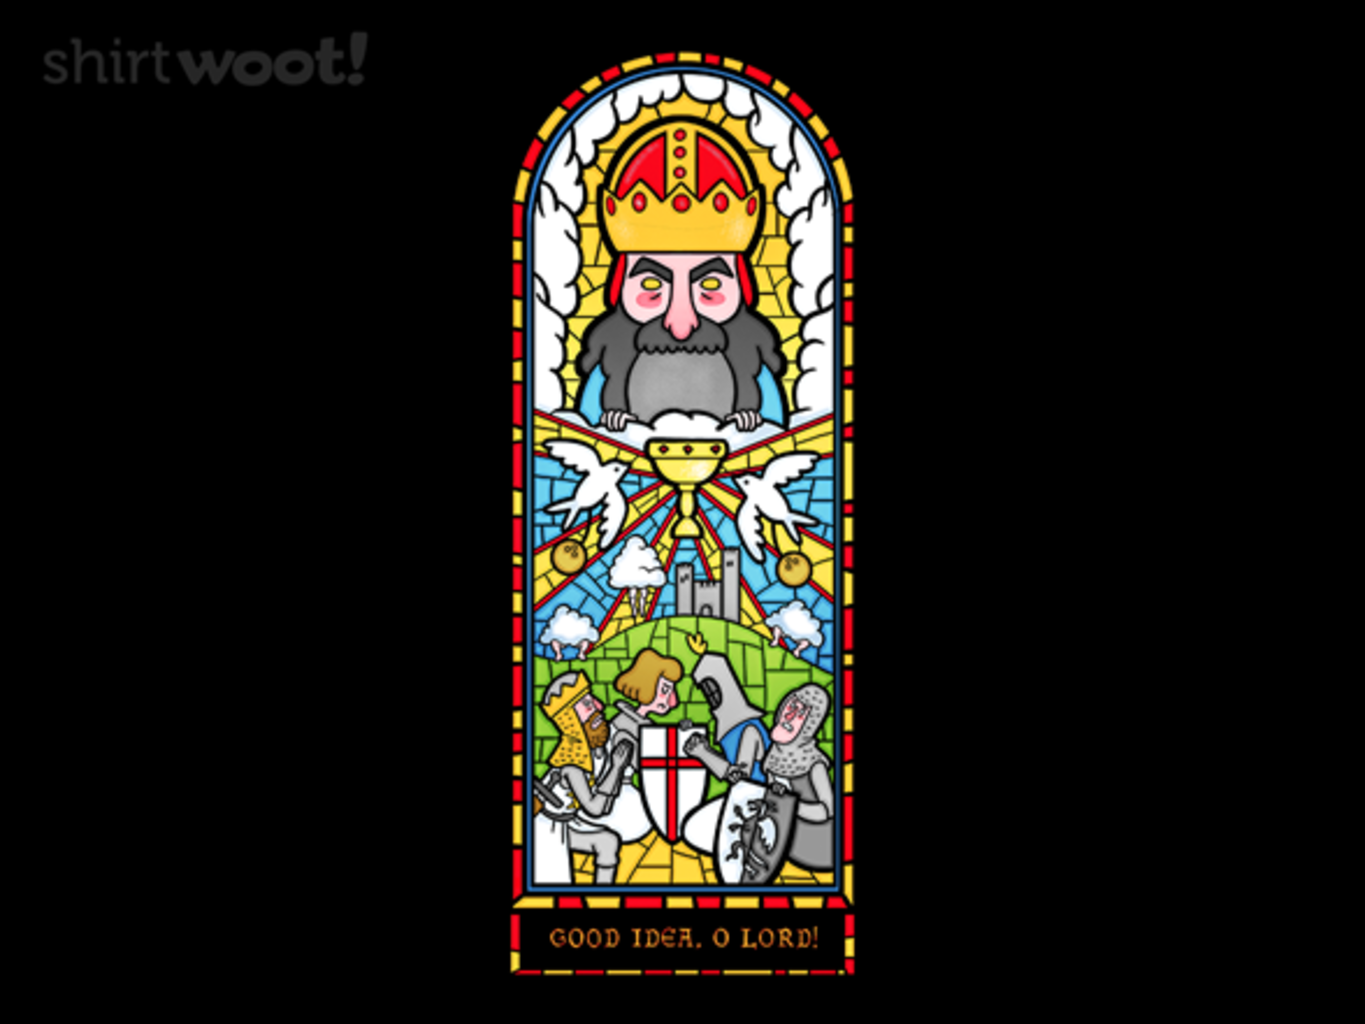 Woot!: Windows of Aaarggghhh - II - $15.00 + Free shipping